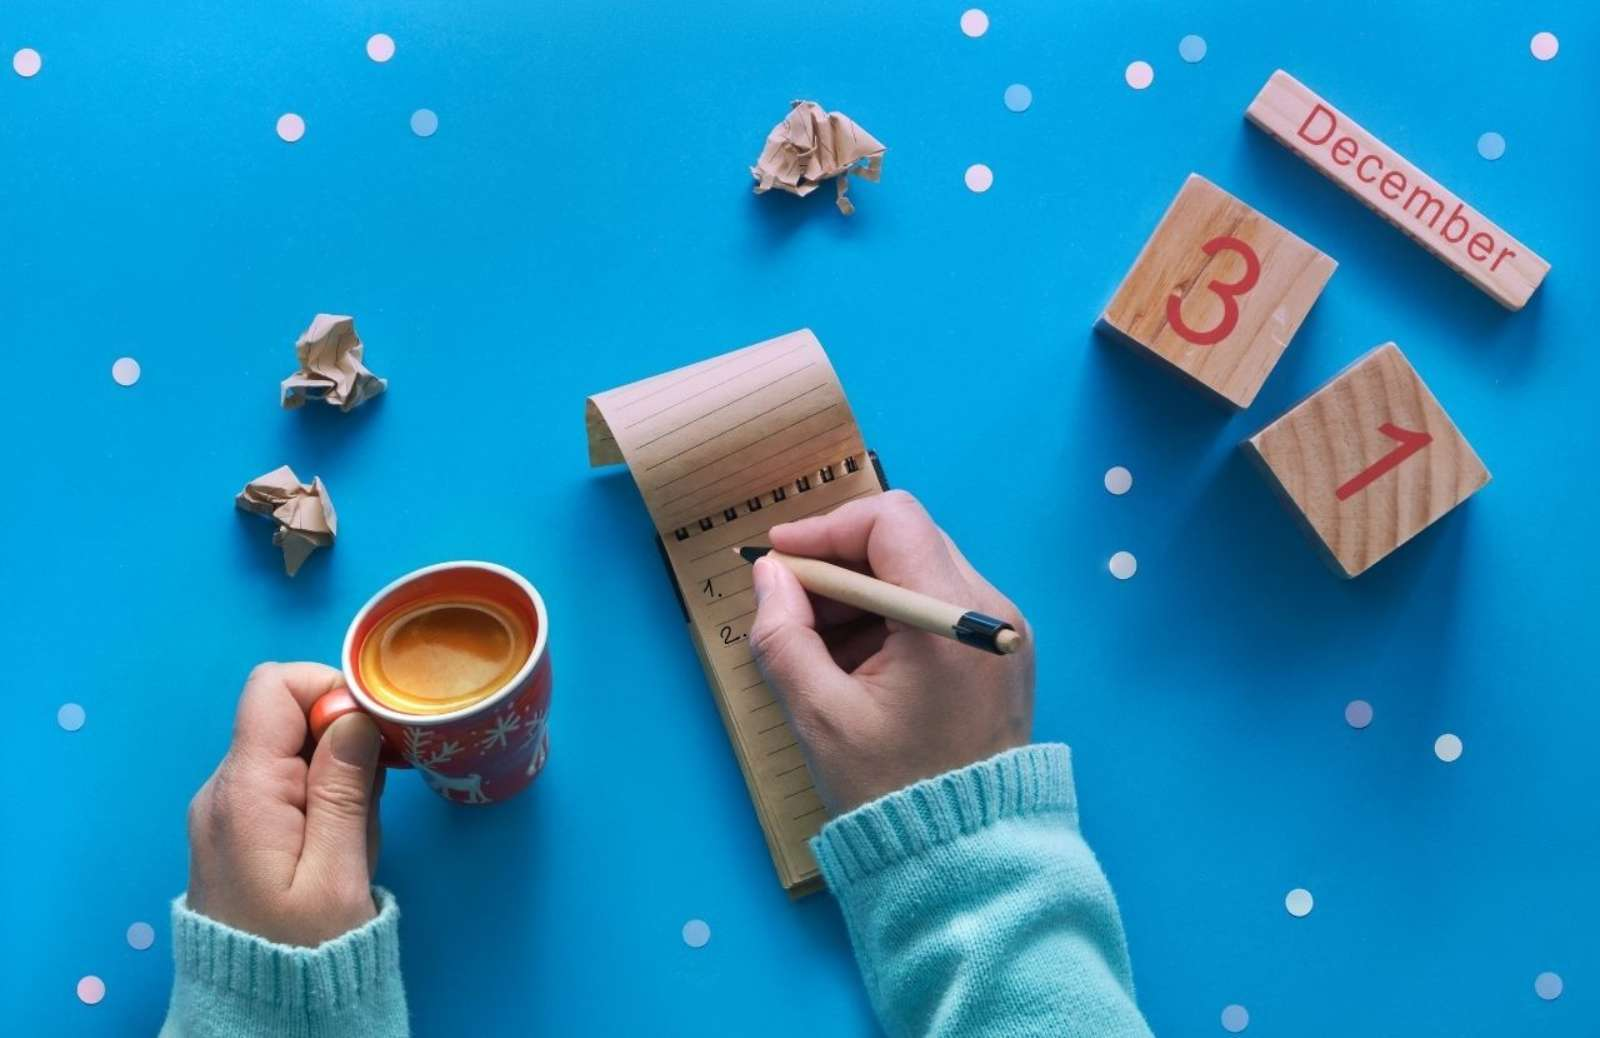 person writing on small pad of paper while holding coffee mug